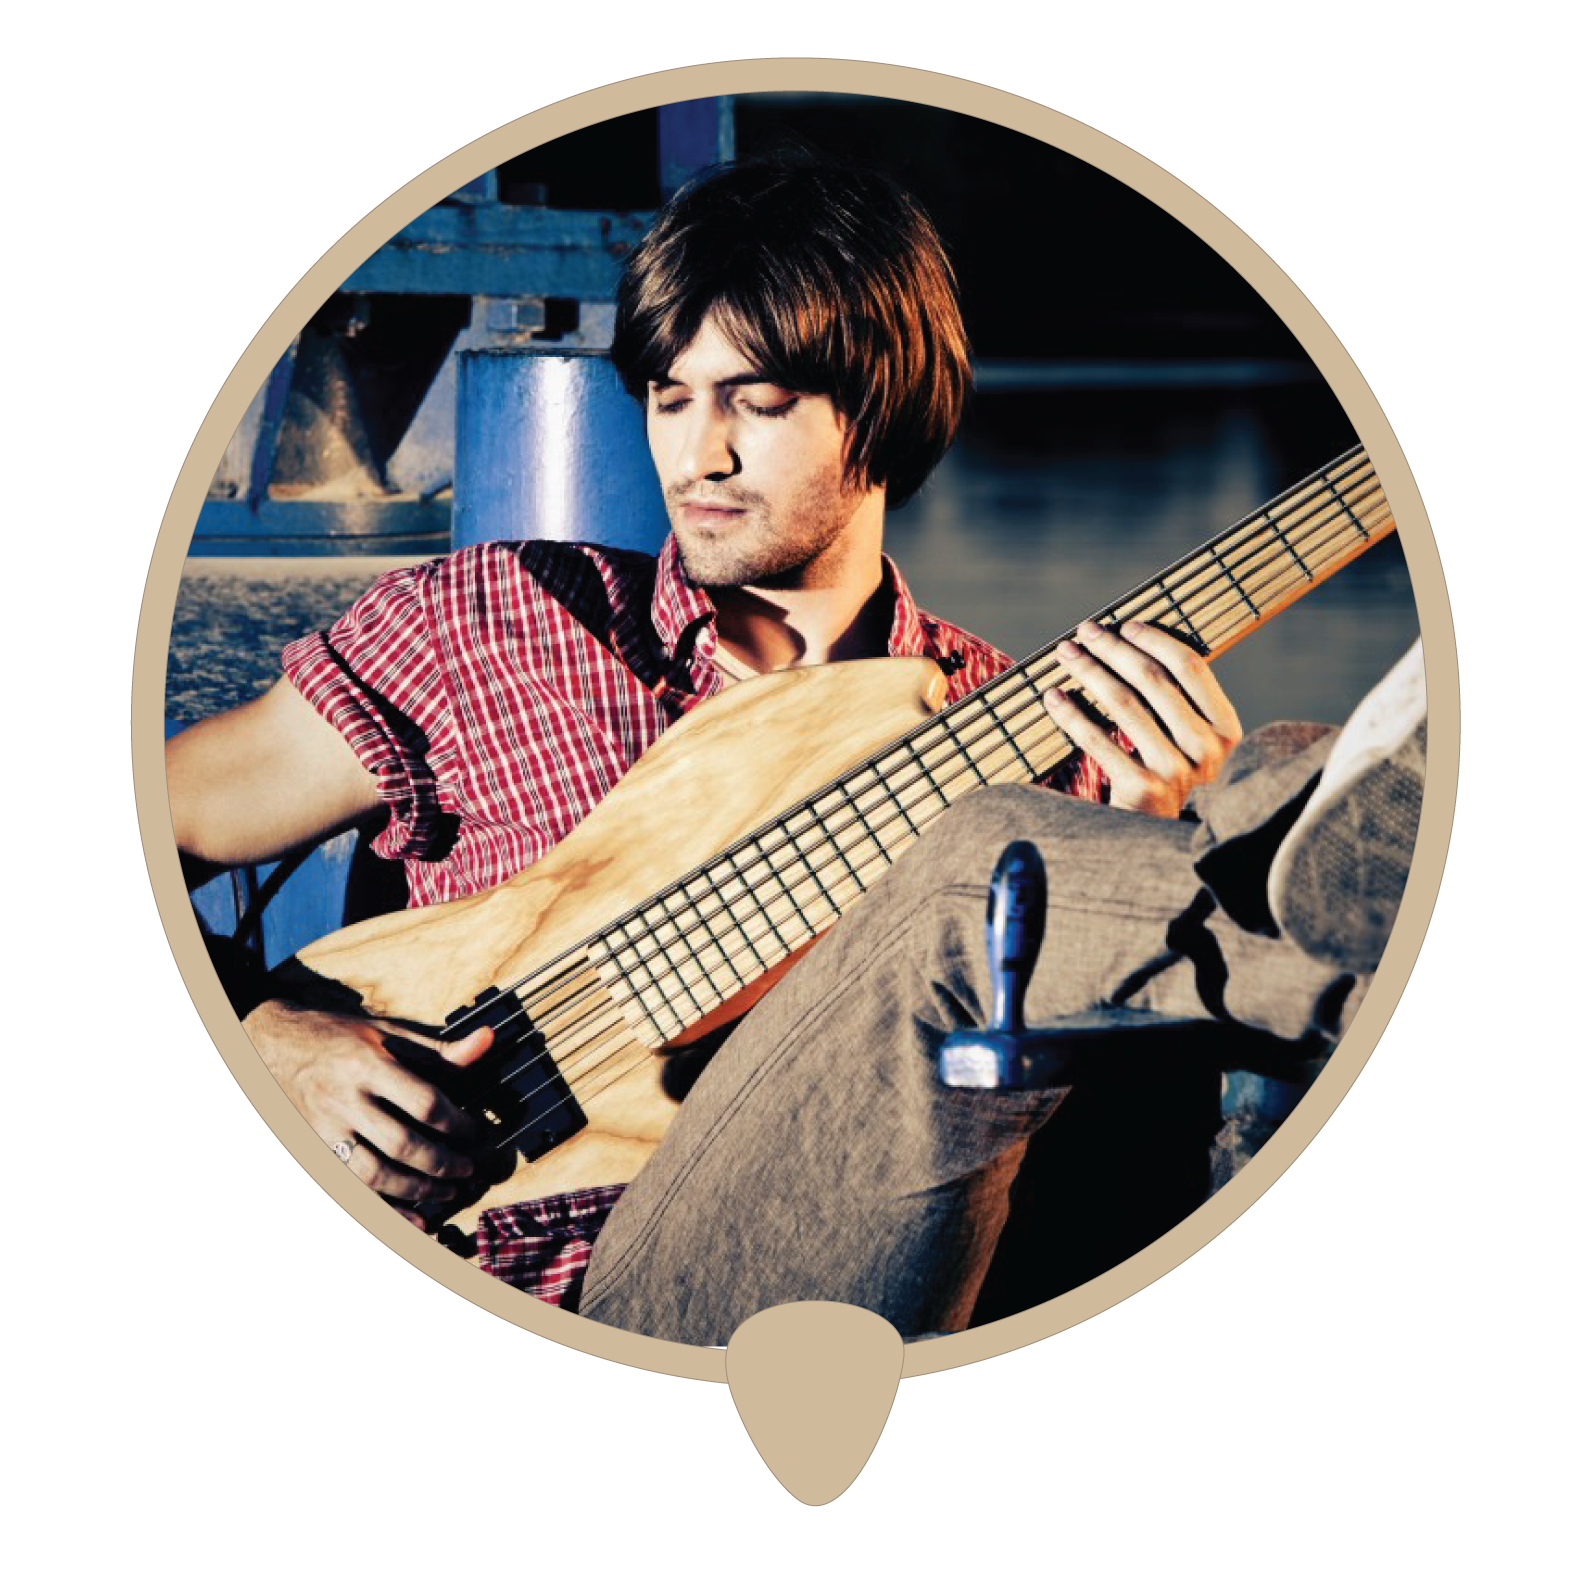 Bass man icon - Learn bass. Bass lessons, classes and teachers in Sydney City.